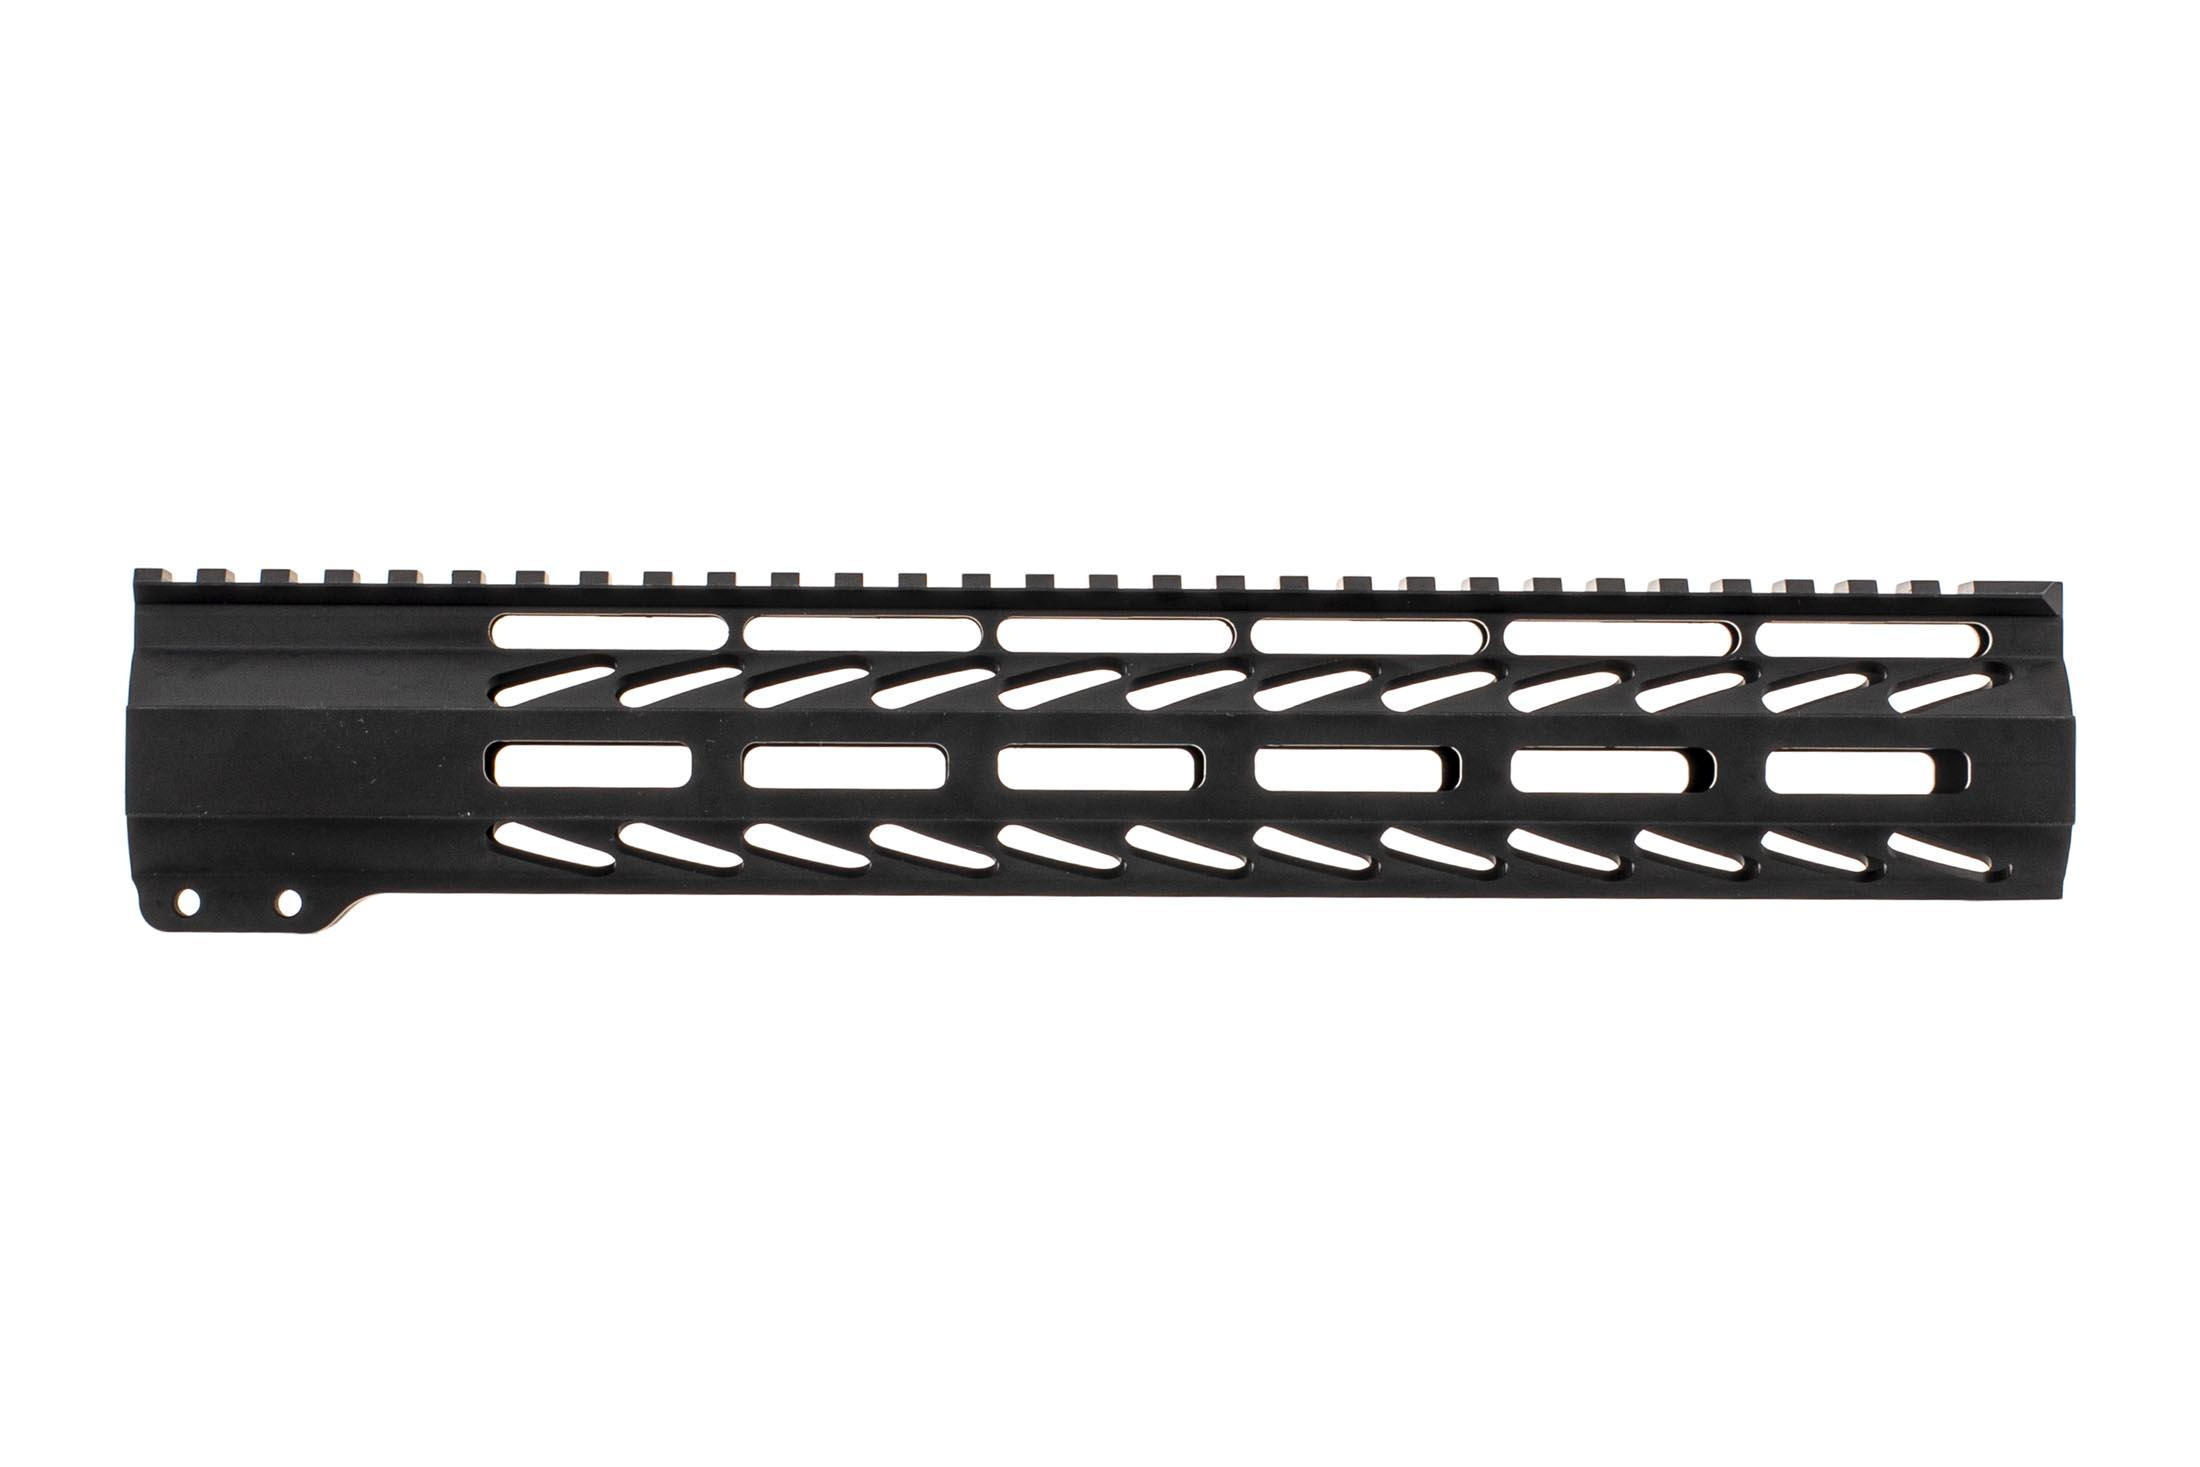 Ghost Firearms free float logoless AR 15 M-LOK rail features a tough black anodized finish and full length 12 top rail.